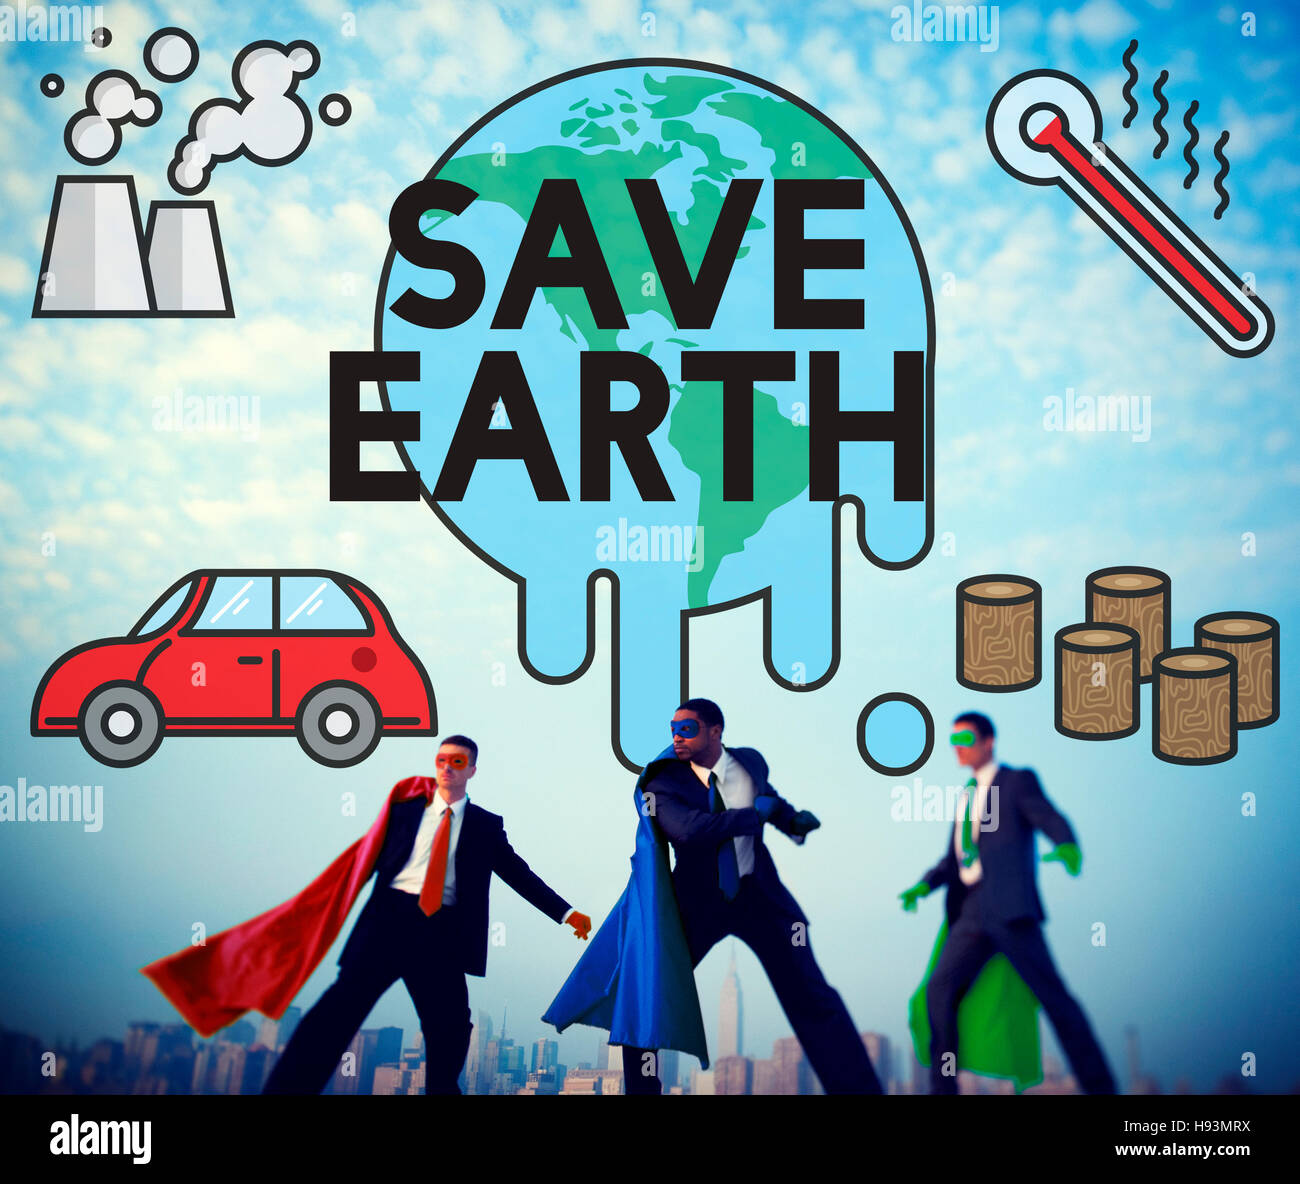 Temperature Save Earth Pollution Planet Environment